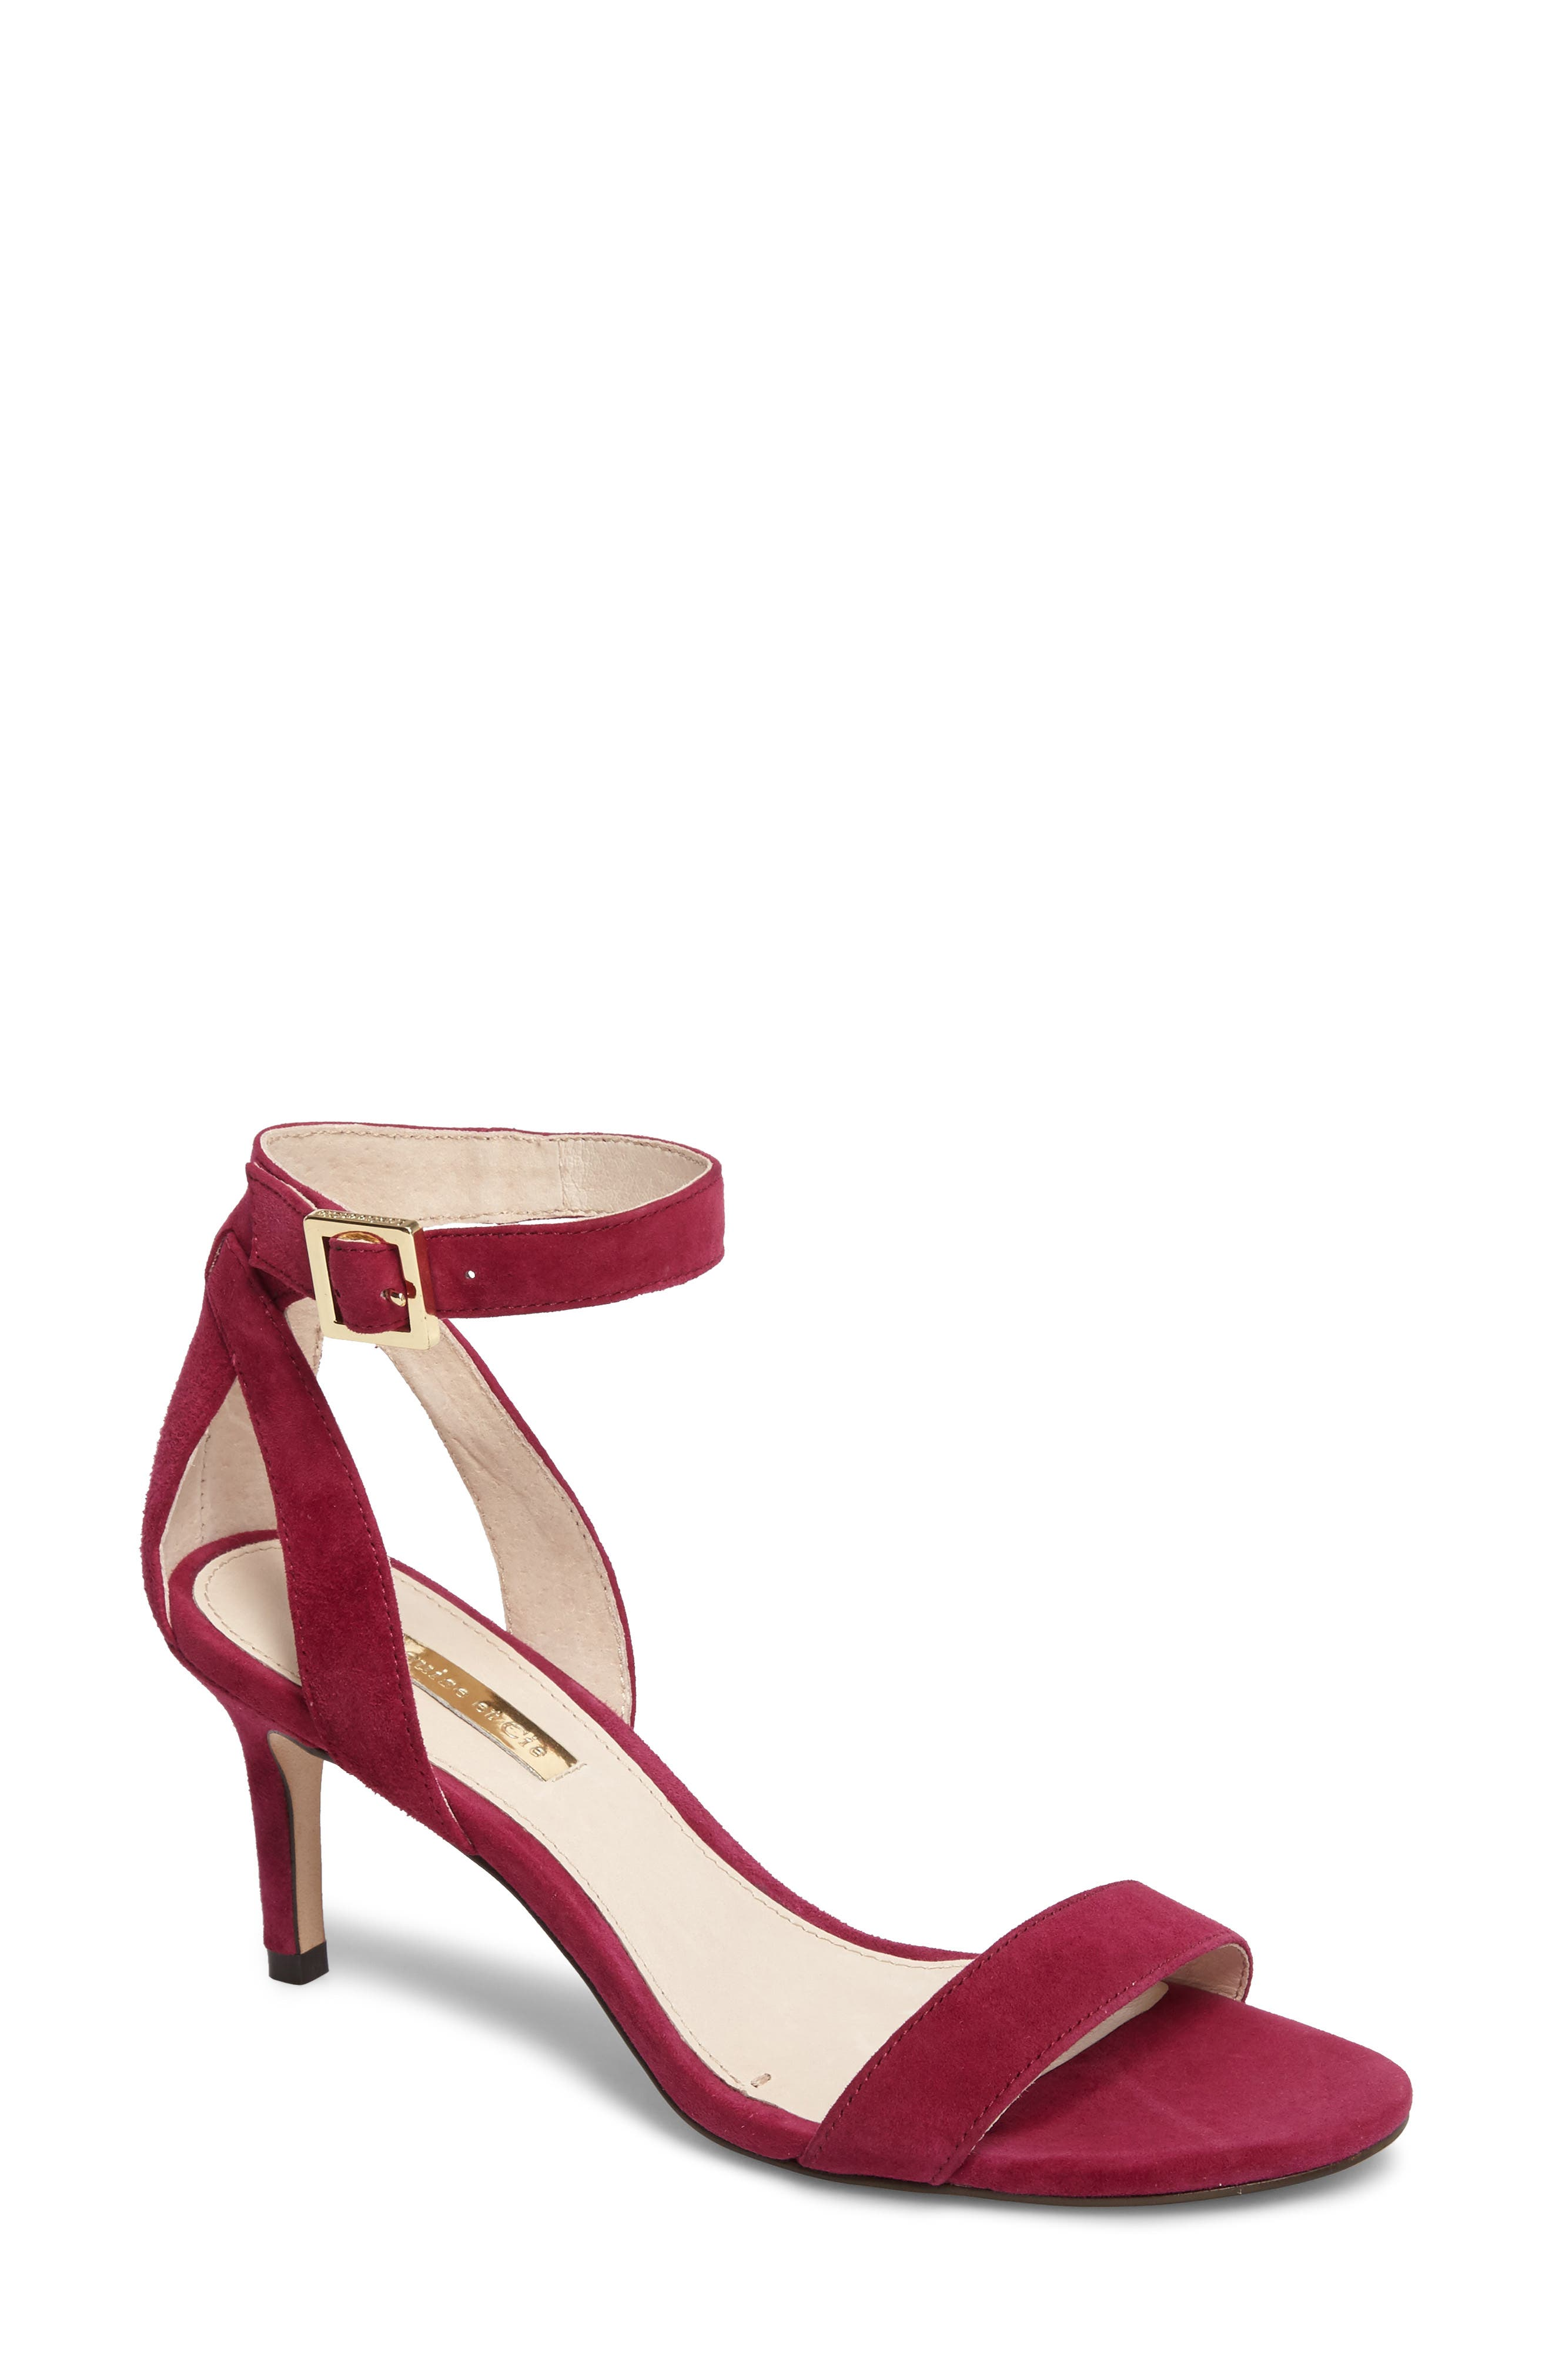 Alternate Image 1 Selected - Louise et Cie 'Hyacinth' Ankle Strap Sandal (Women)